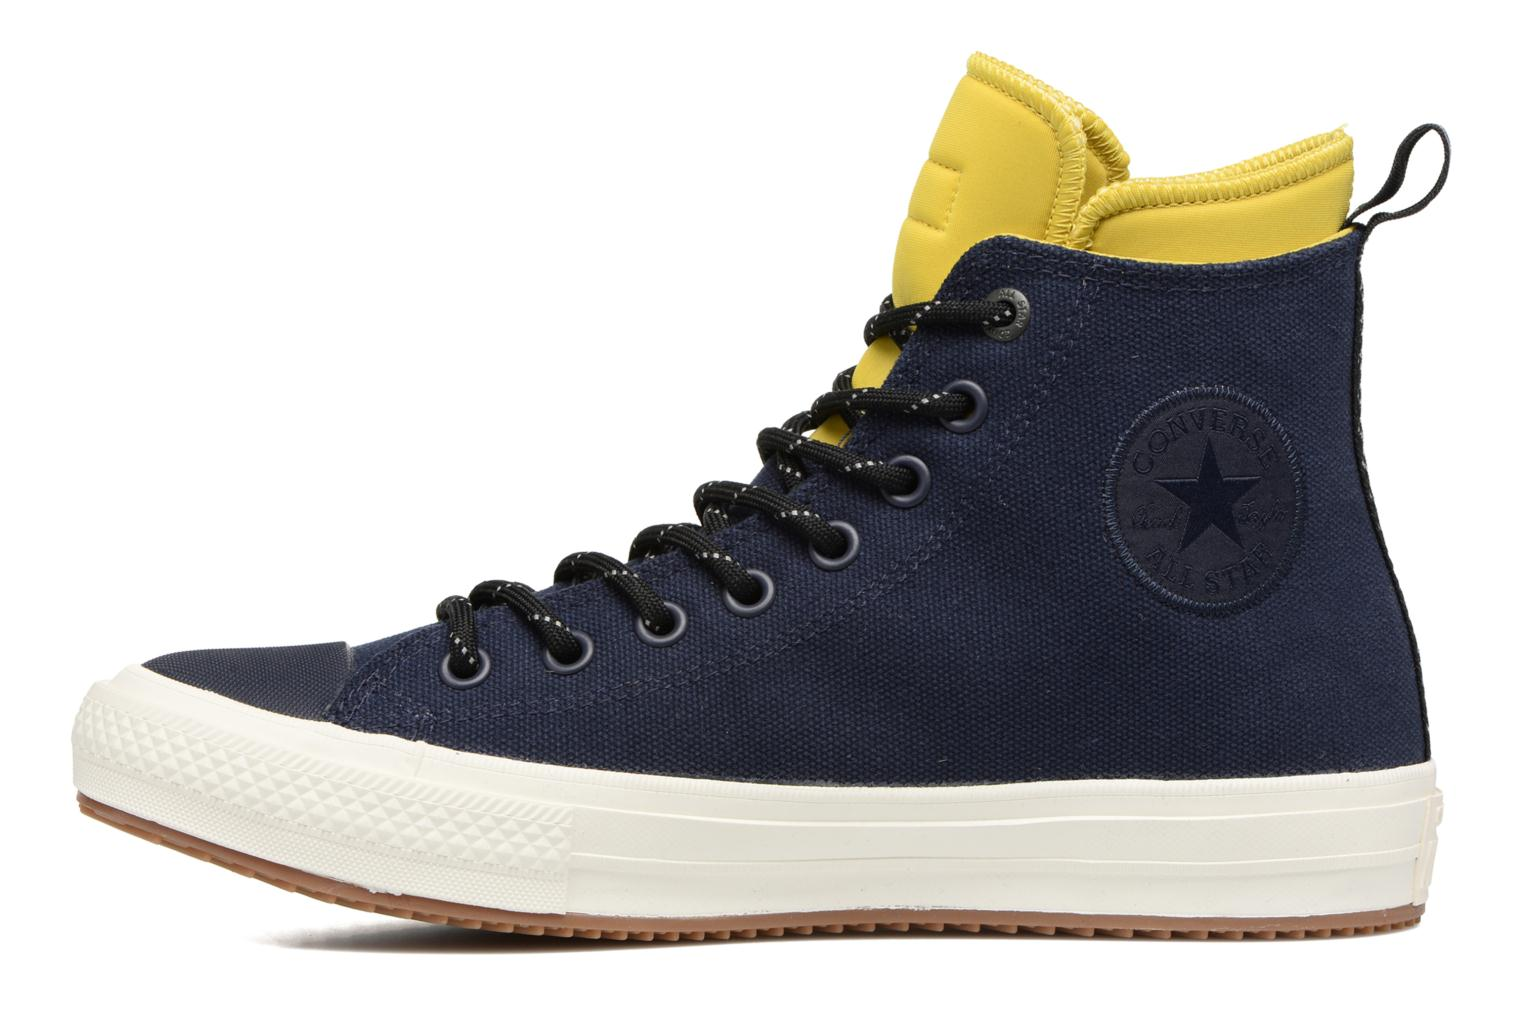 Chuck Taylor All Star II Hi Shield Canvas Boot M Obsidian/Bitter Lemon/Egret